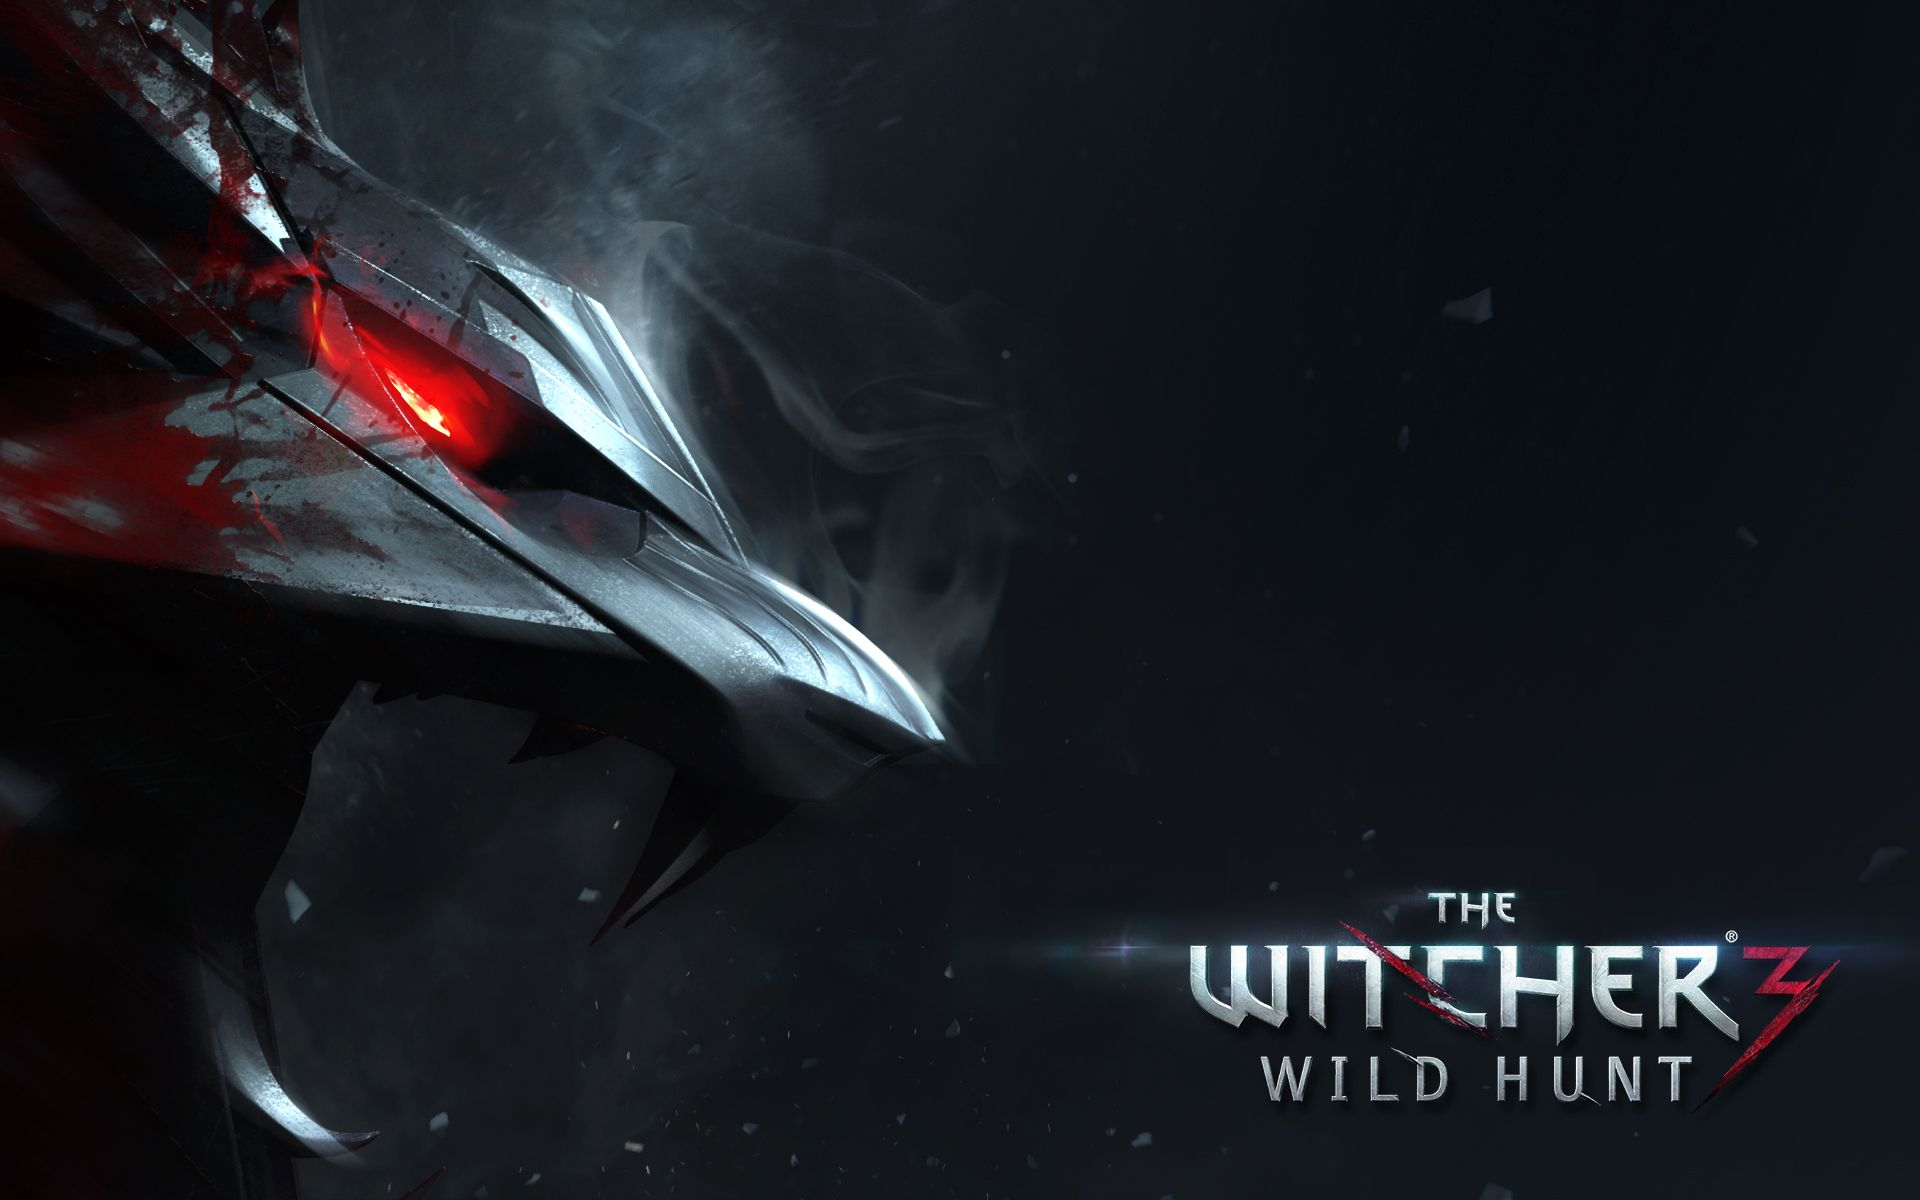 1080p And Some 4k Wallpaper For Phones The Witcher Wild Hunt Witcher Art The Witcher